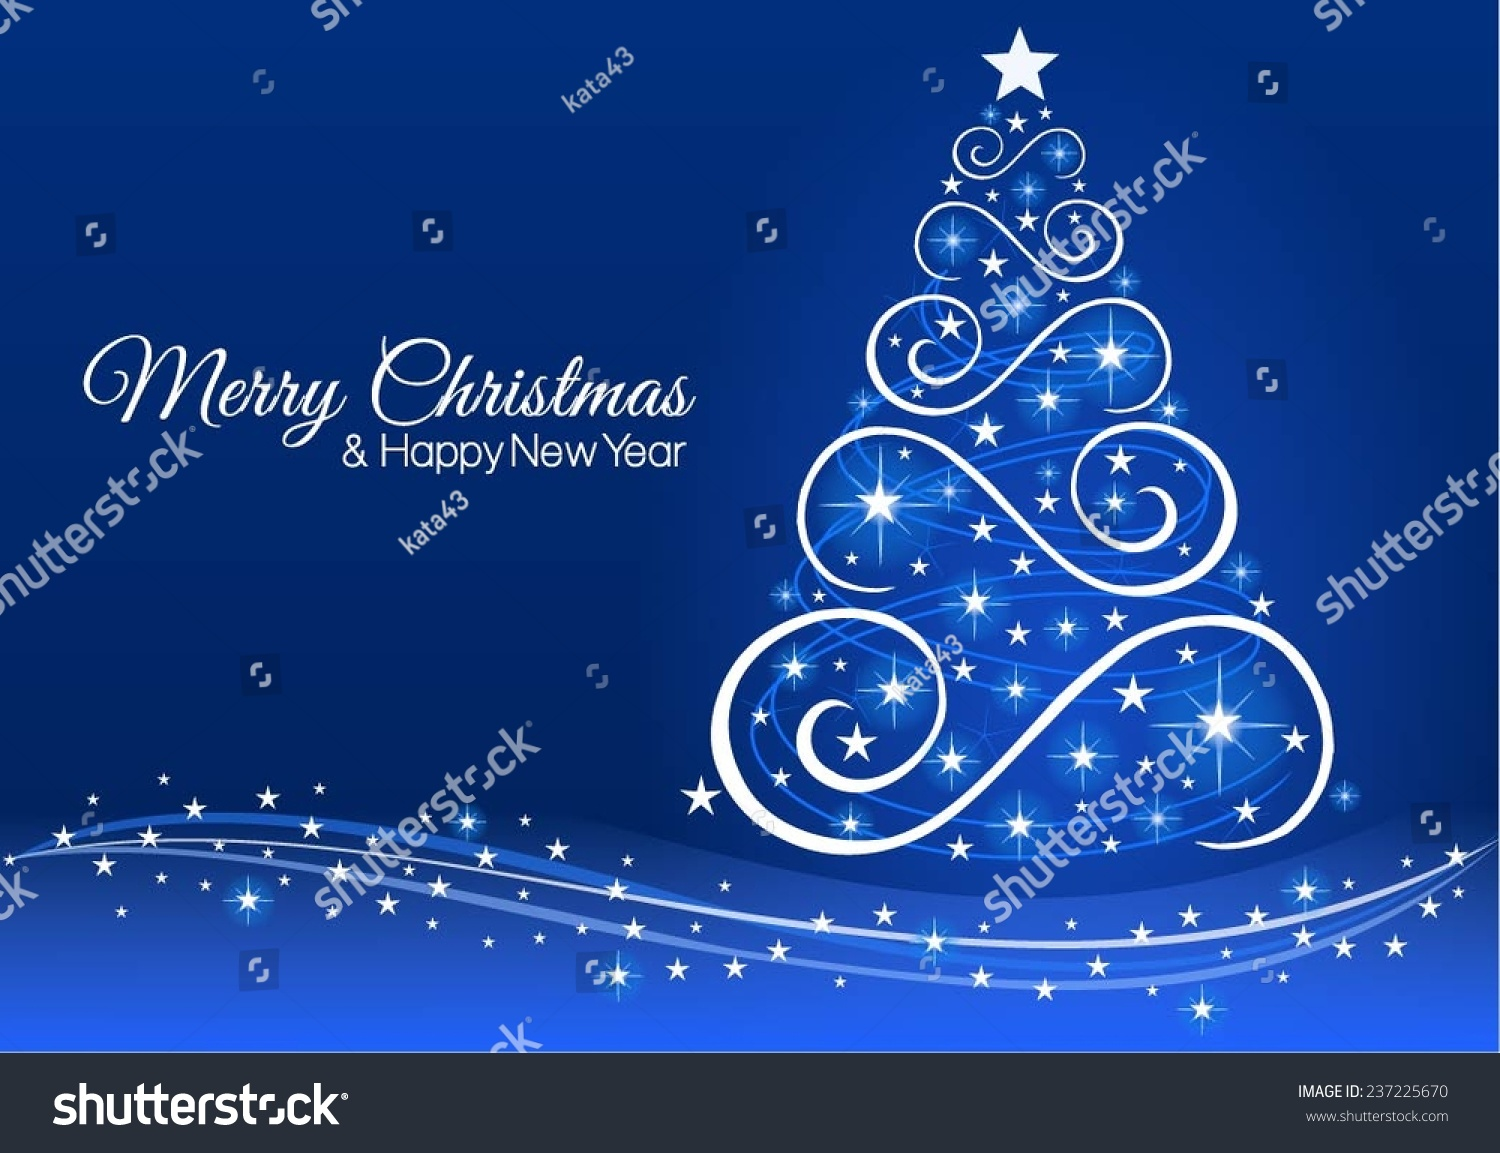 Christmas new year greeting card blue stock vector 237225670 christmas and new year greeting card in blue kristyandbryce Images